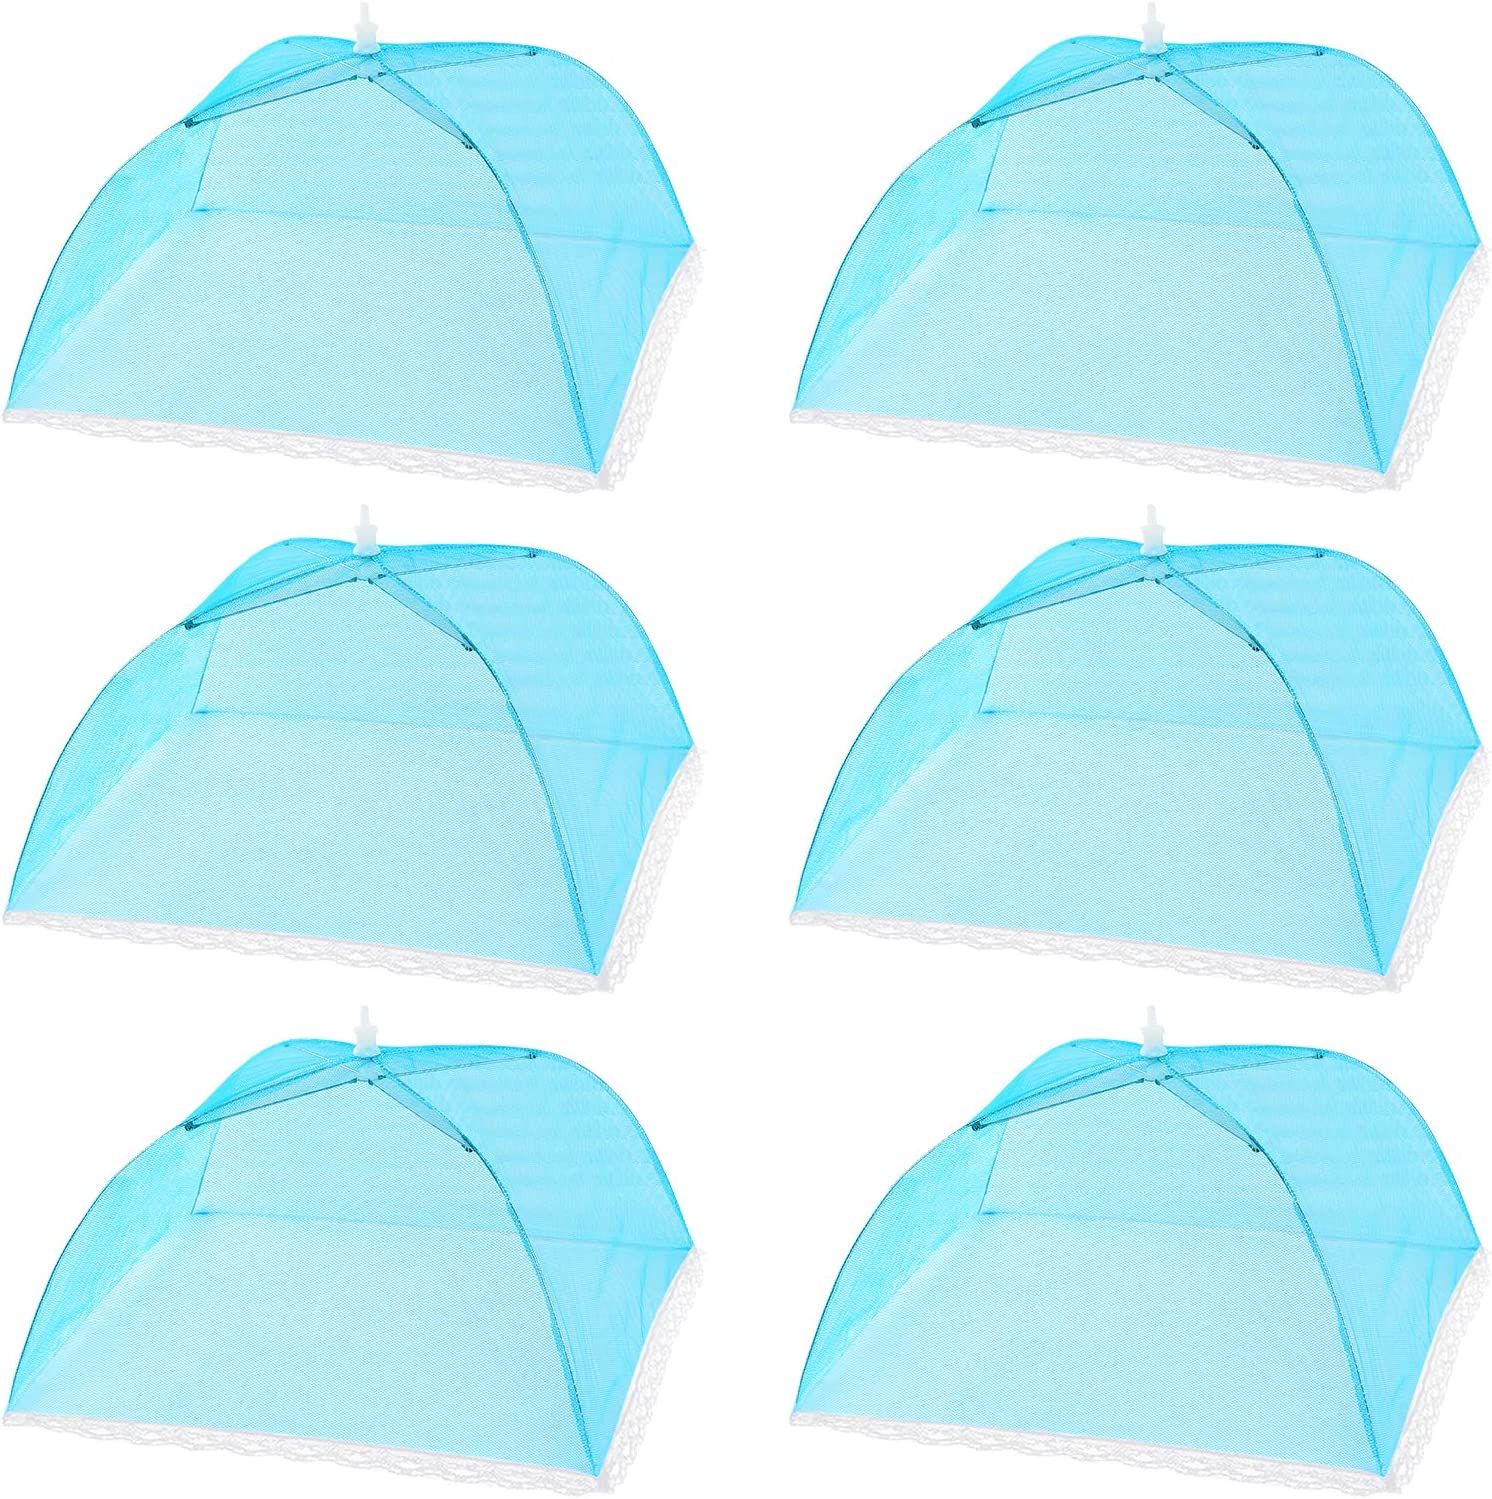 HabiLife 6 pack Large Pop-Up Mesh Food Cover Tent,17 Inches Food Protector Covers Reusable and Collapsible Outdoor Picnic Food Covers Tent For Bugs, Parties Picnics, BBQ (Blue)